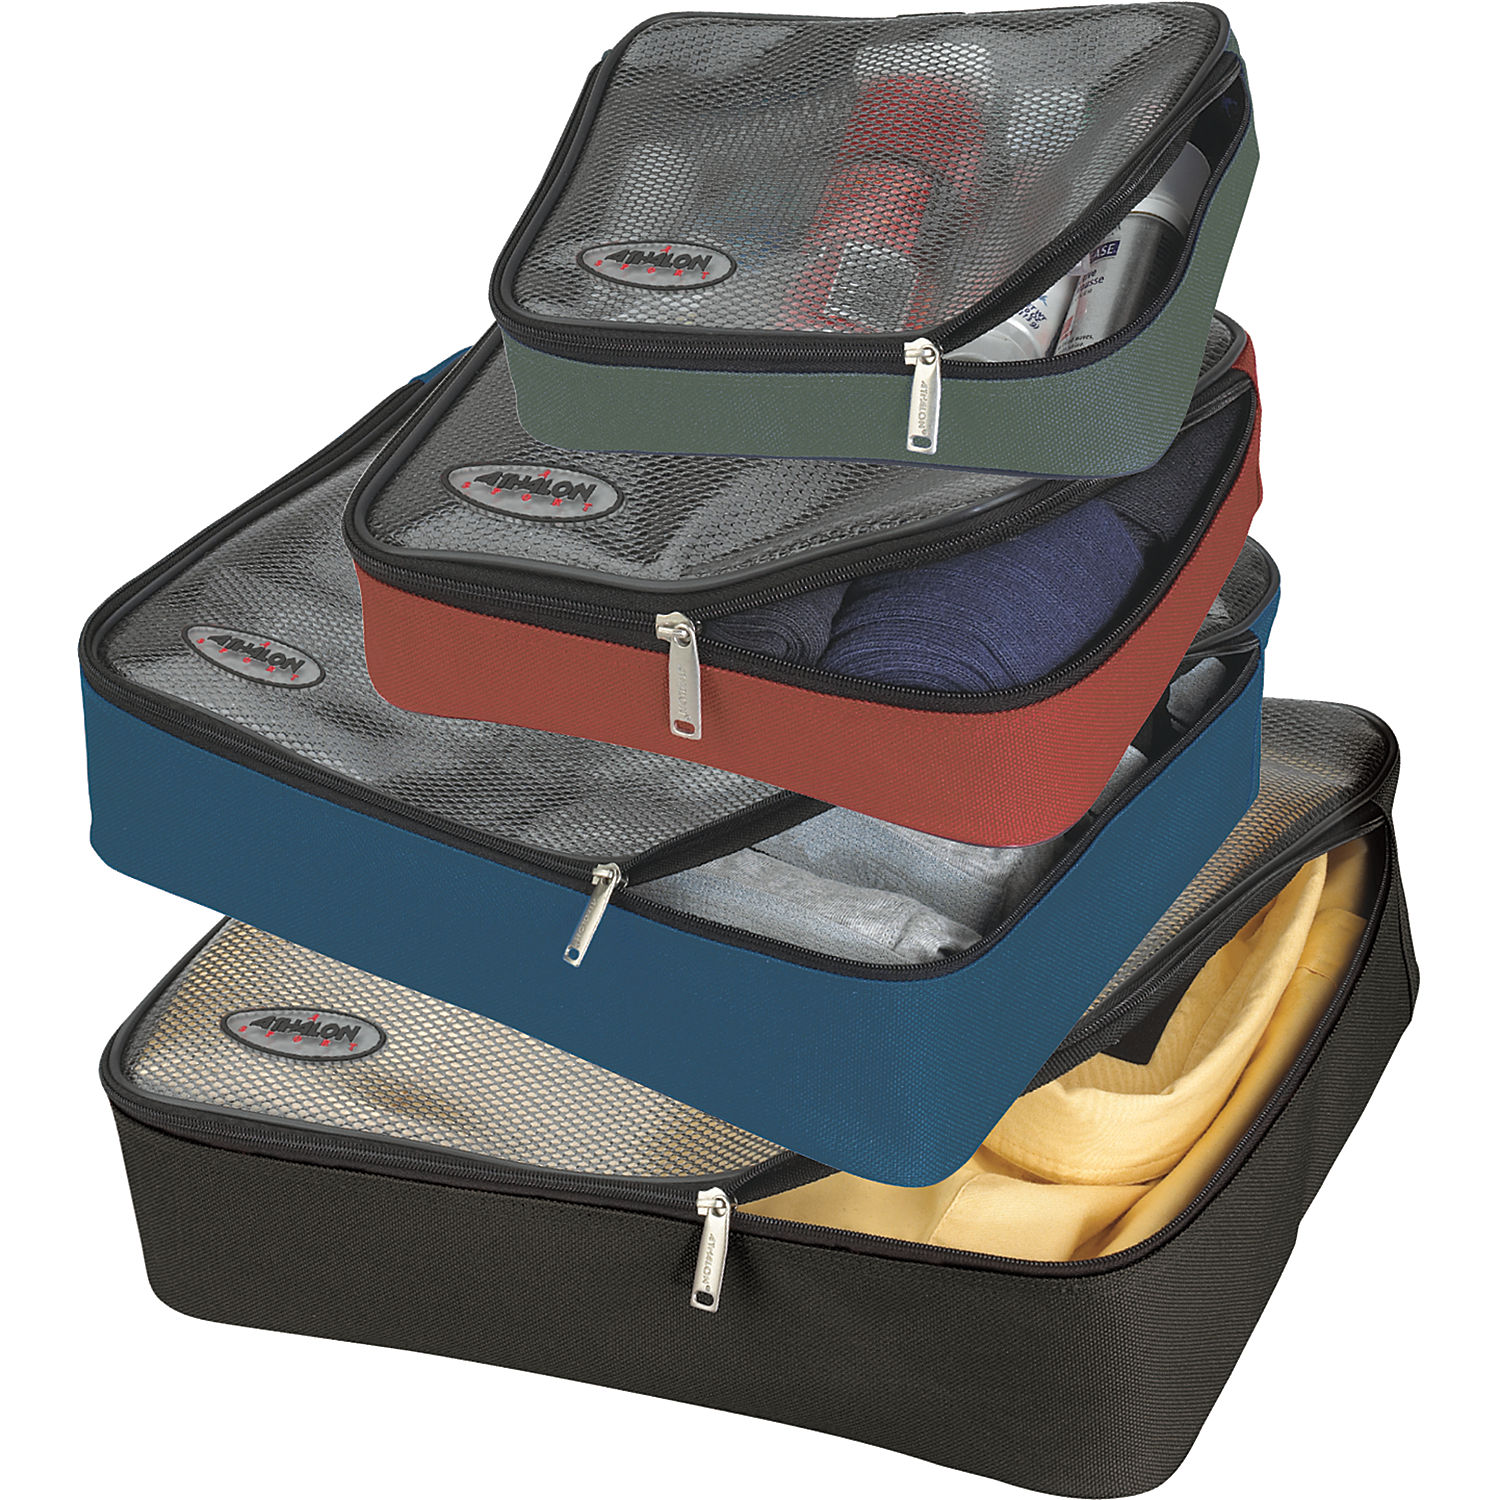 Athalon Packing Cubes - Set of 4 - eBags.com